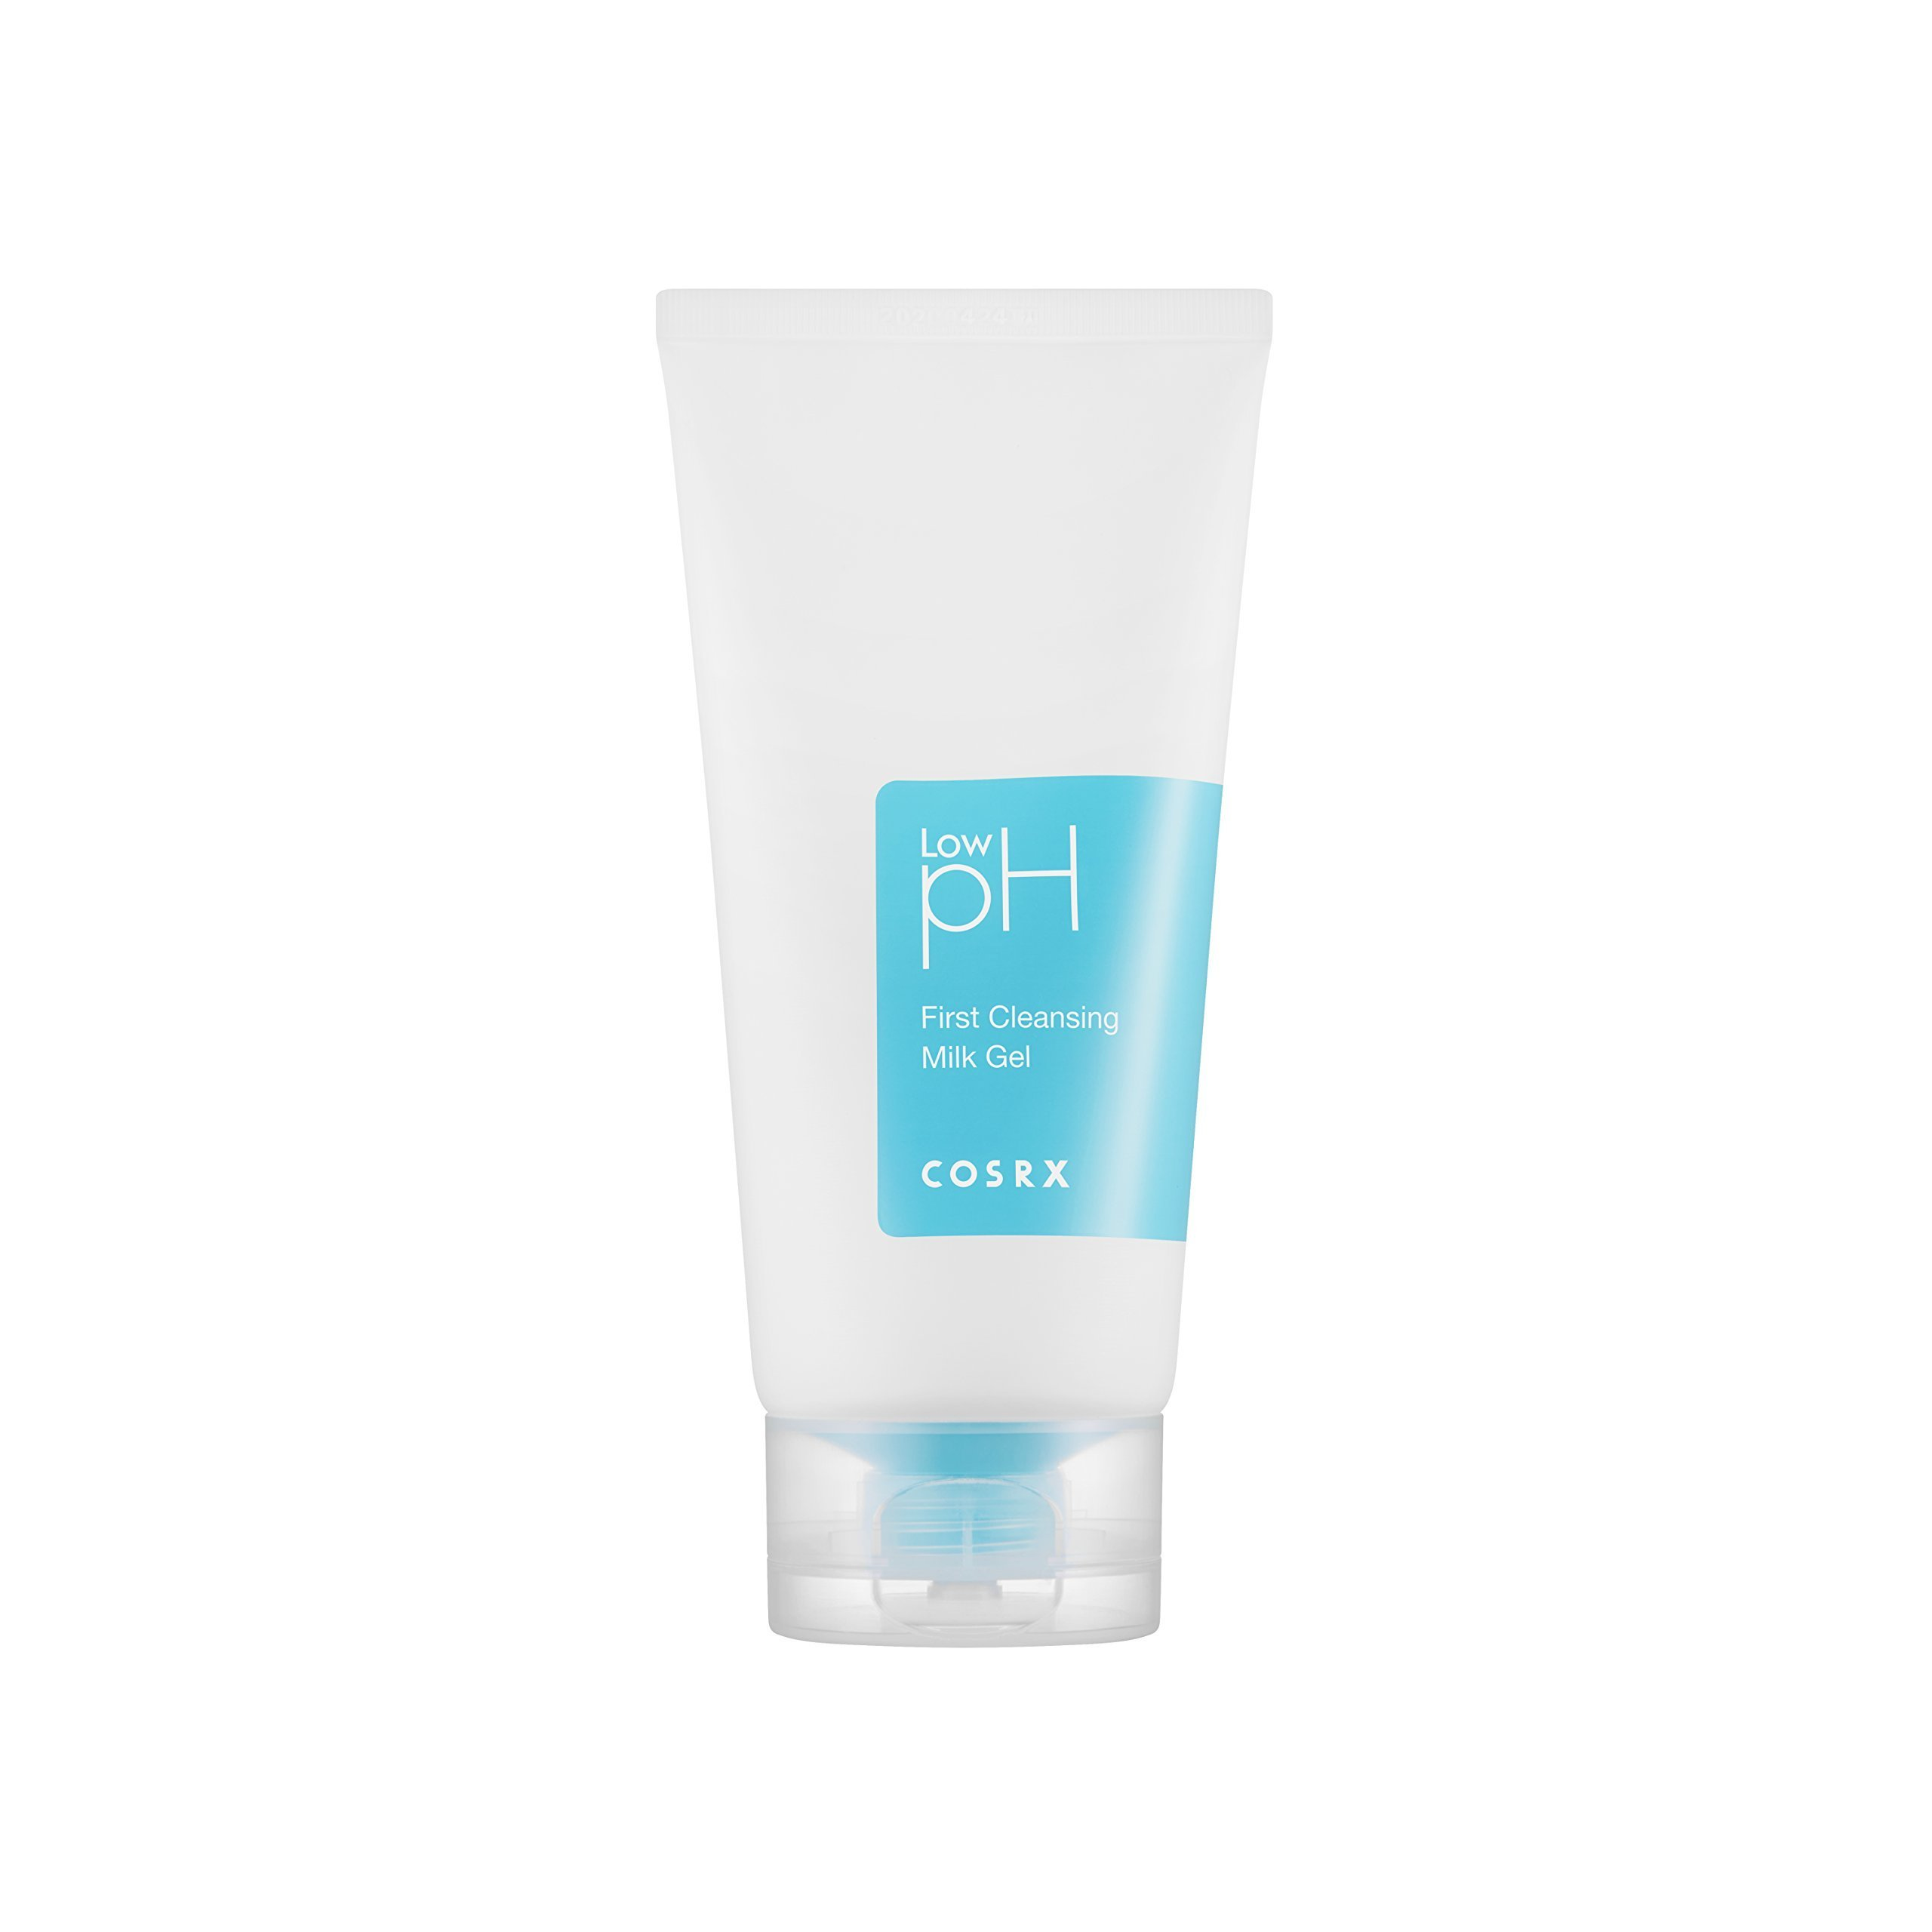 COSRX Low pH First Cleansing Milk Gel, 150 ml, 5.07 oz – Creamy Texture Make up Remover, for Sensitive Skin